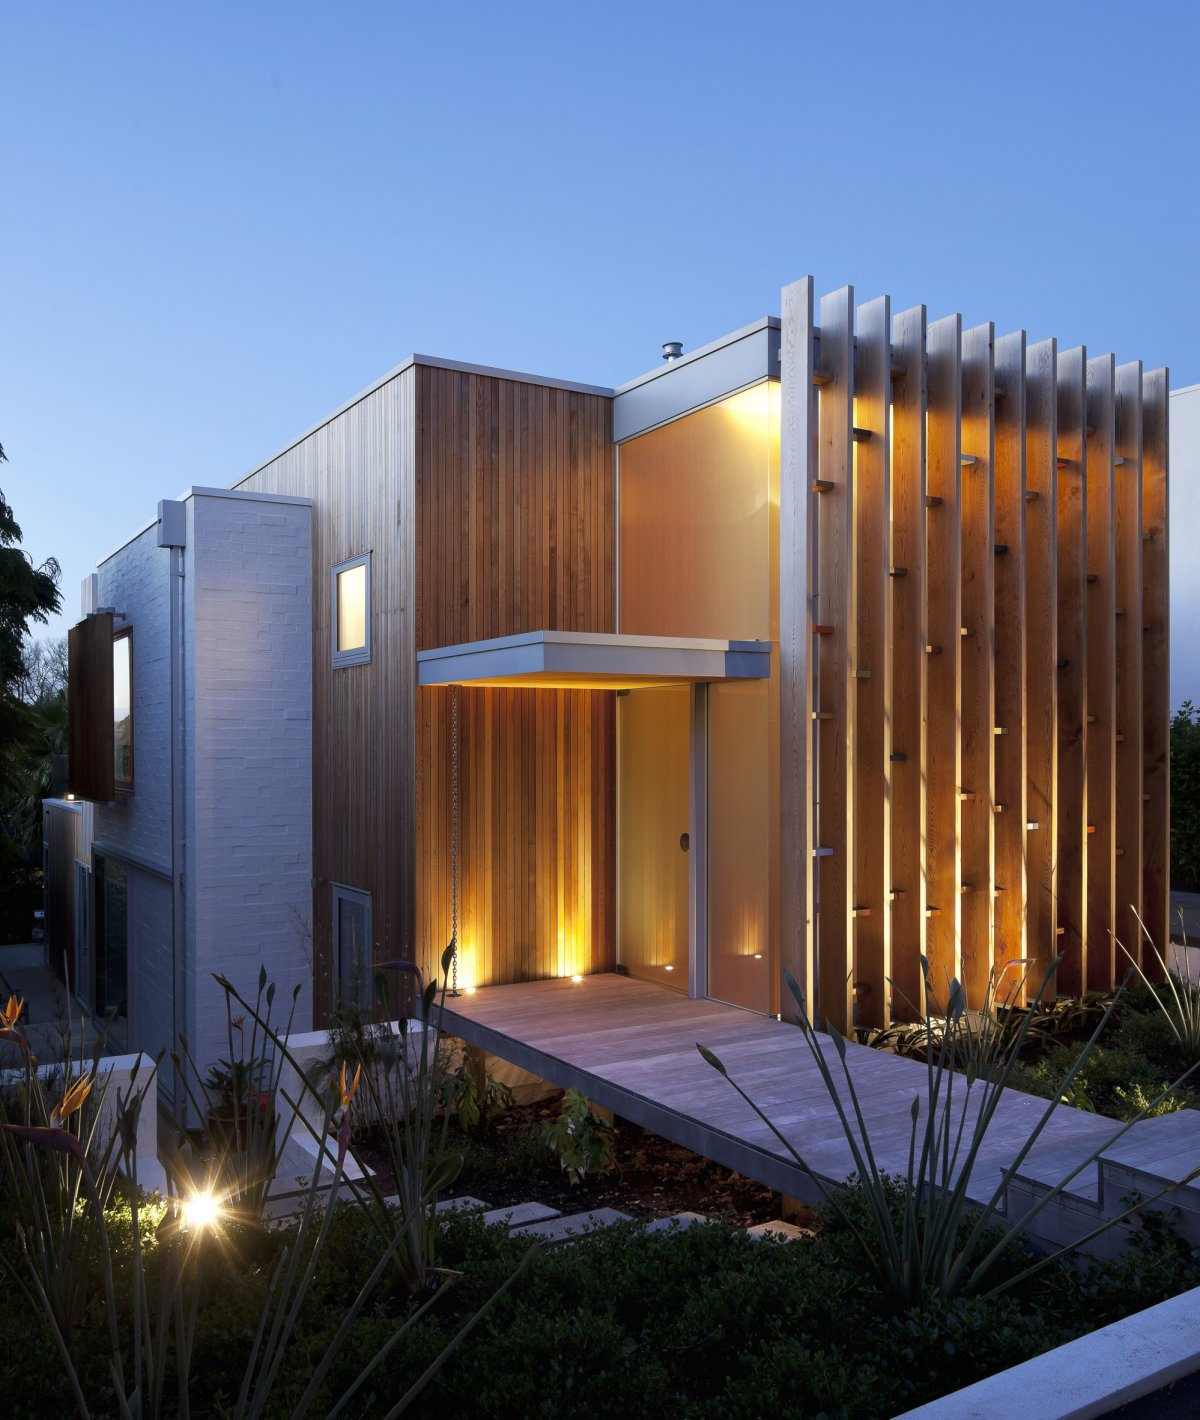 1950-60s Inspired Home in Auckland, New Zealand